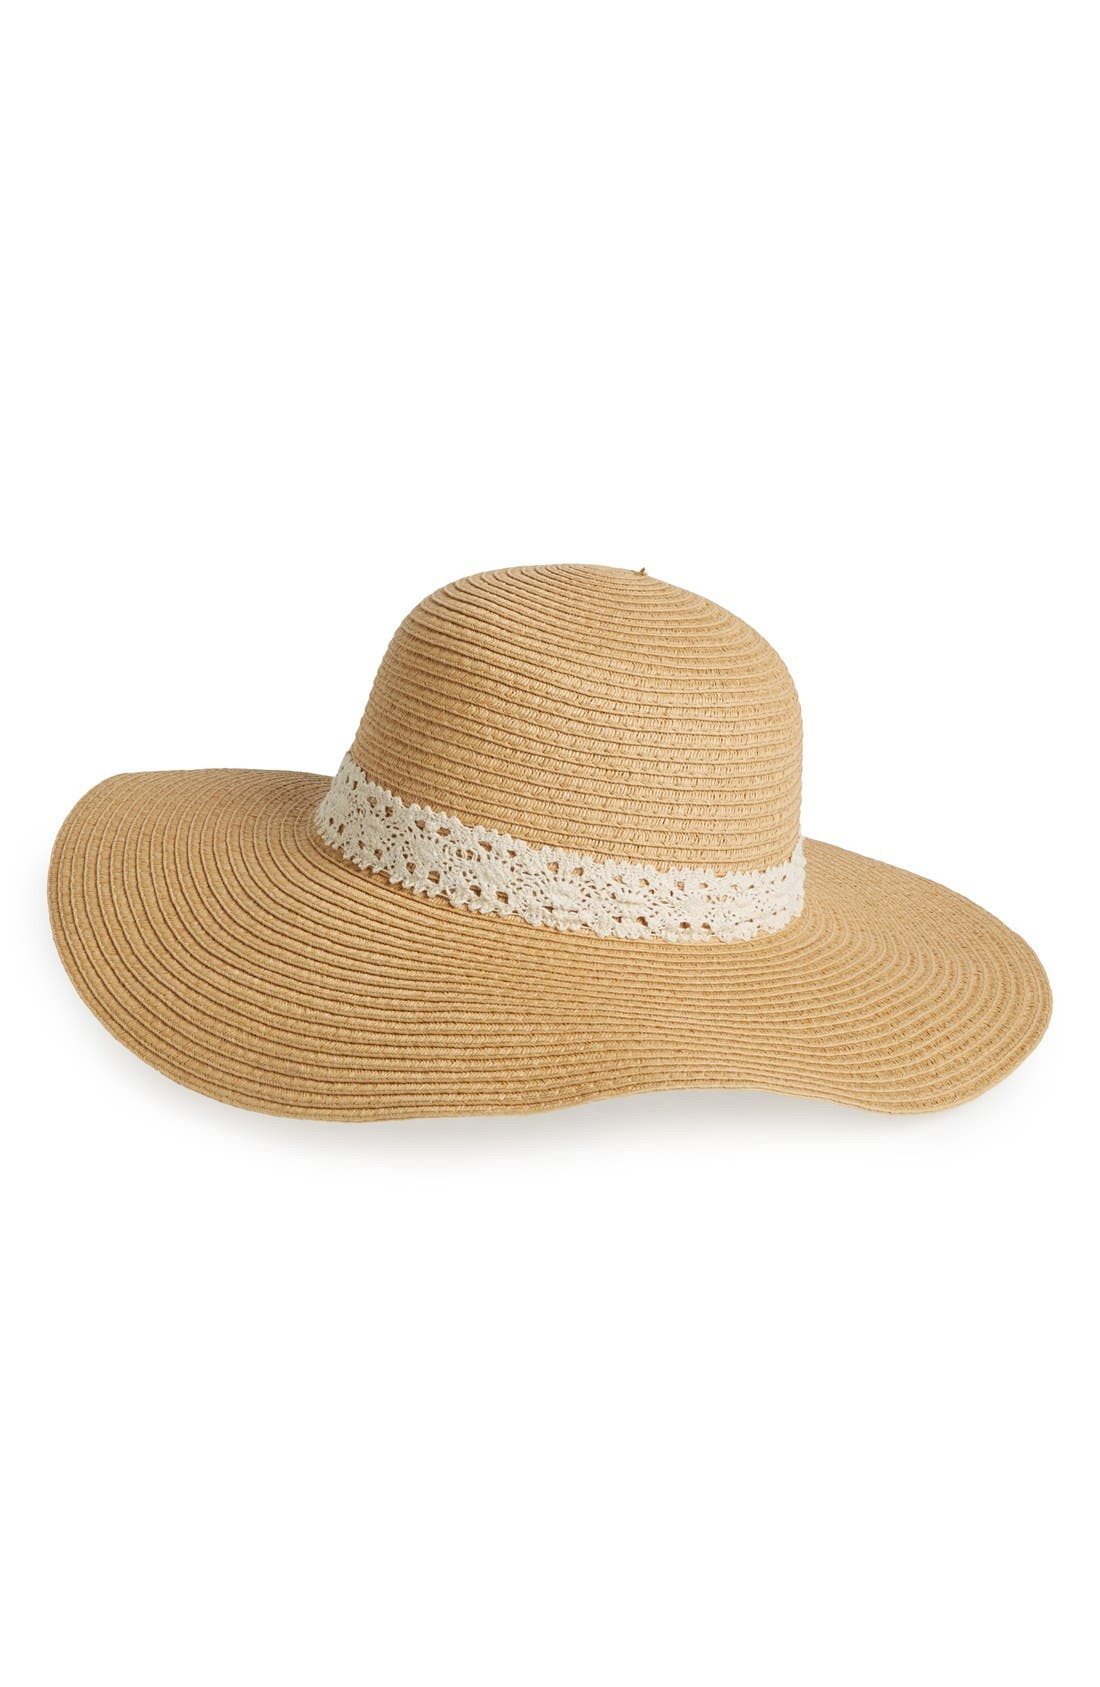 Main Image - Amici Accessories Crochet Band Floppy Straw Hat